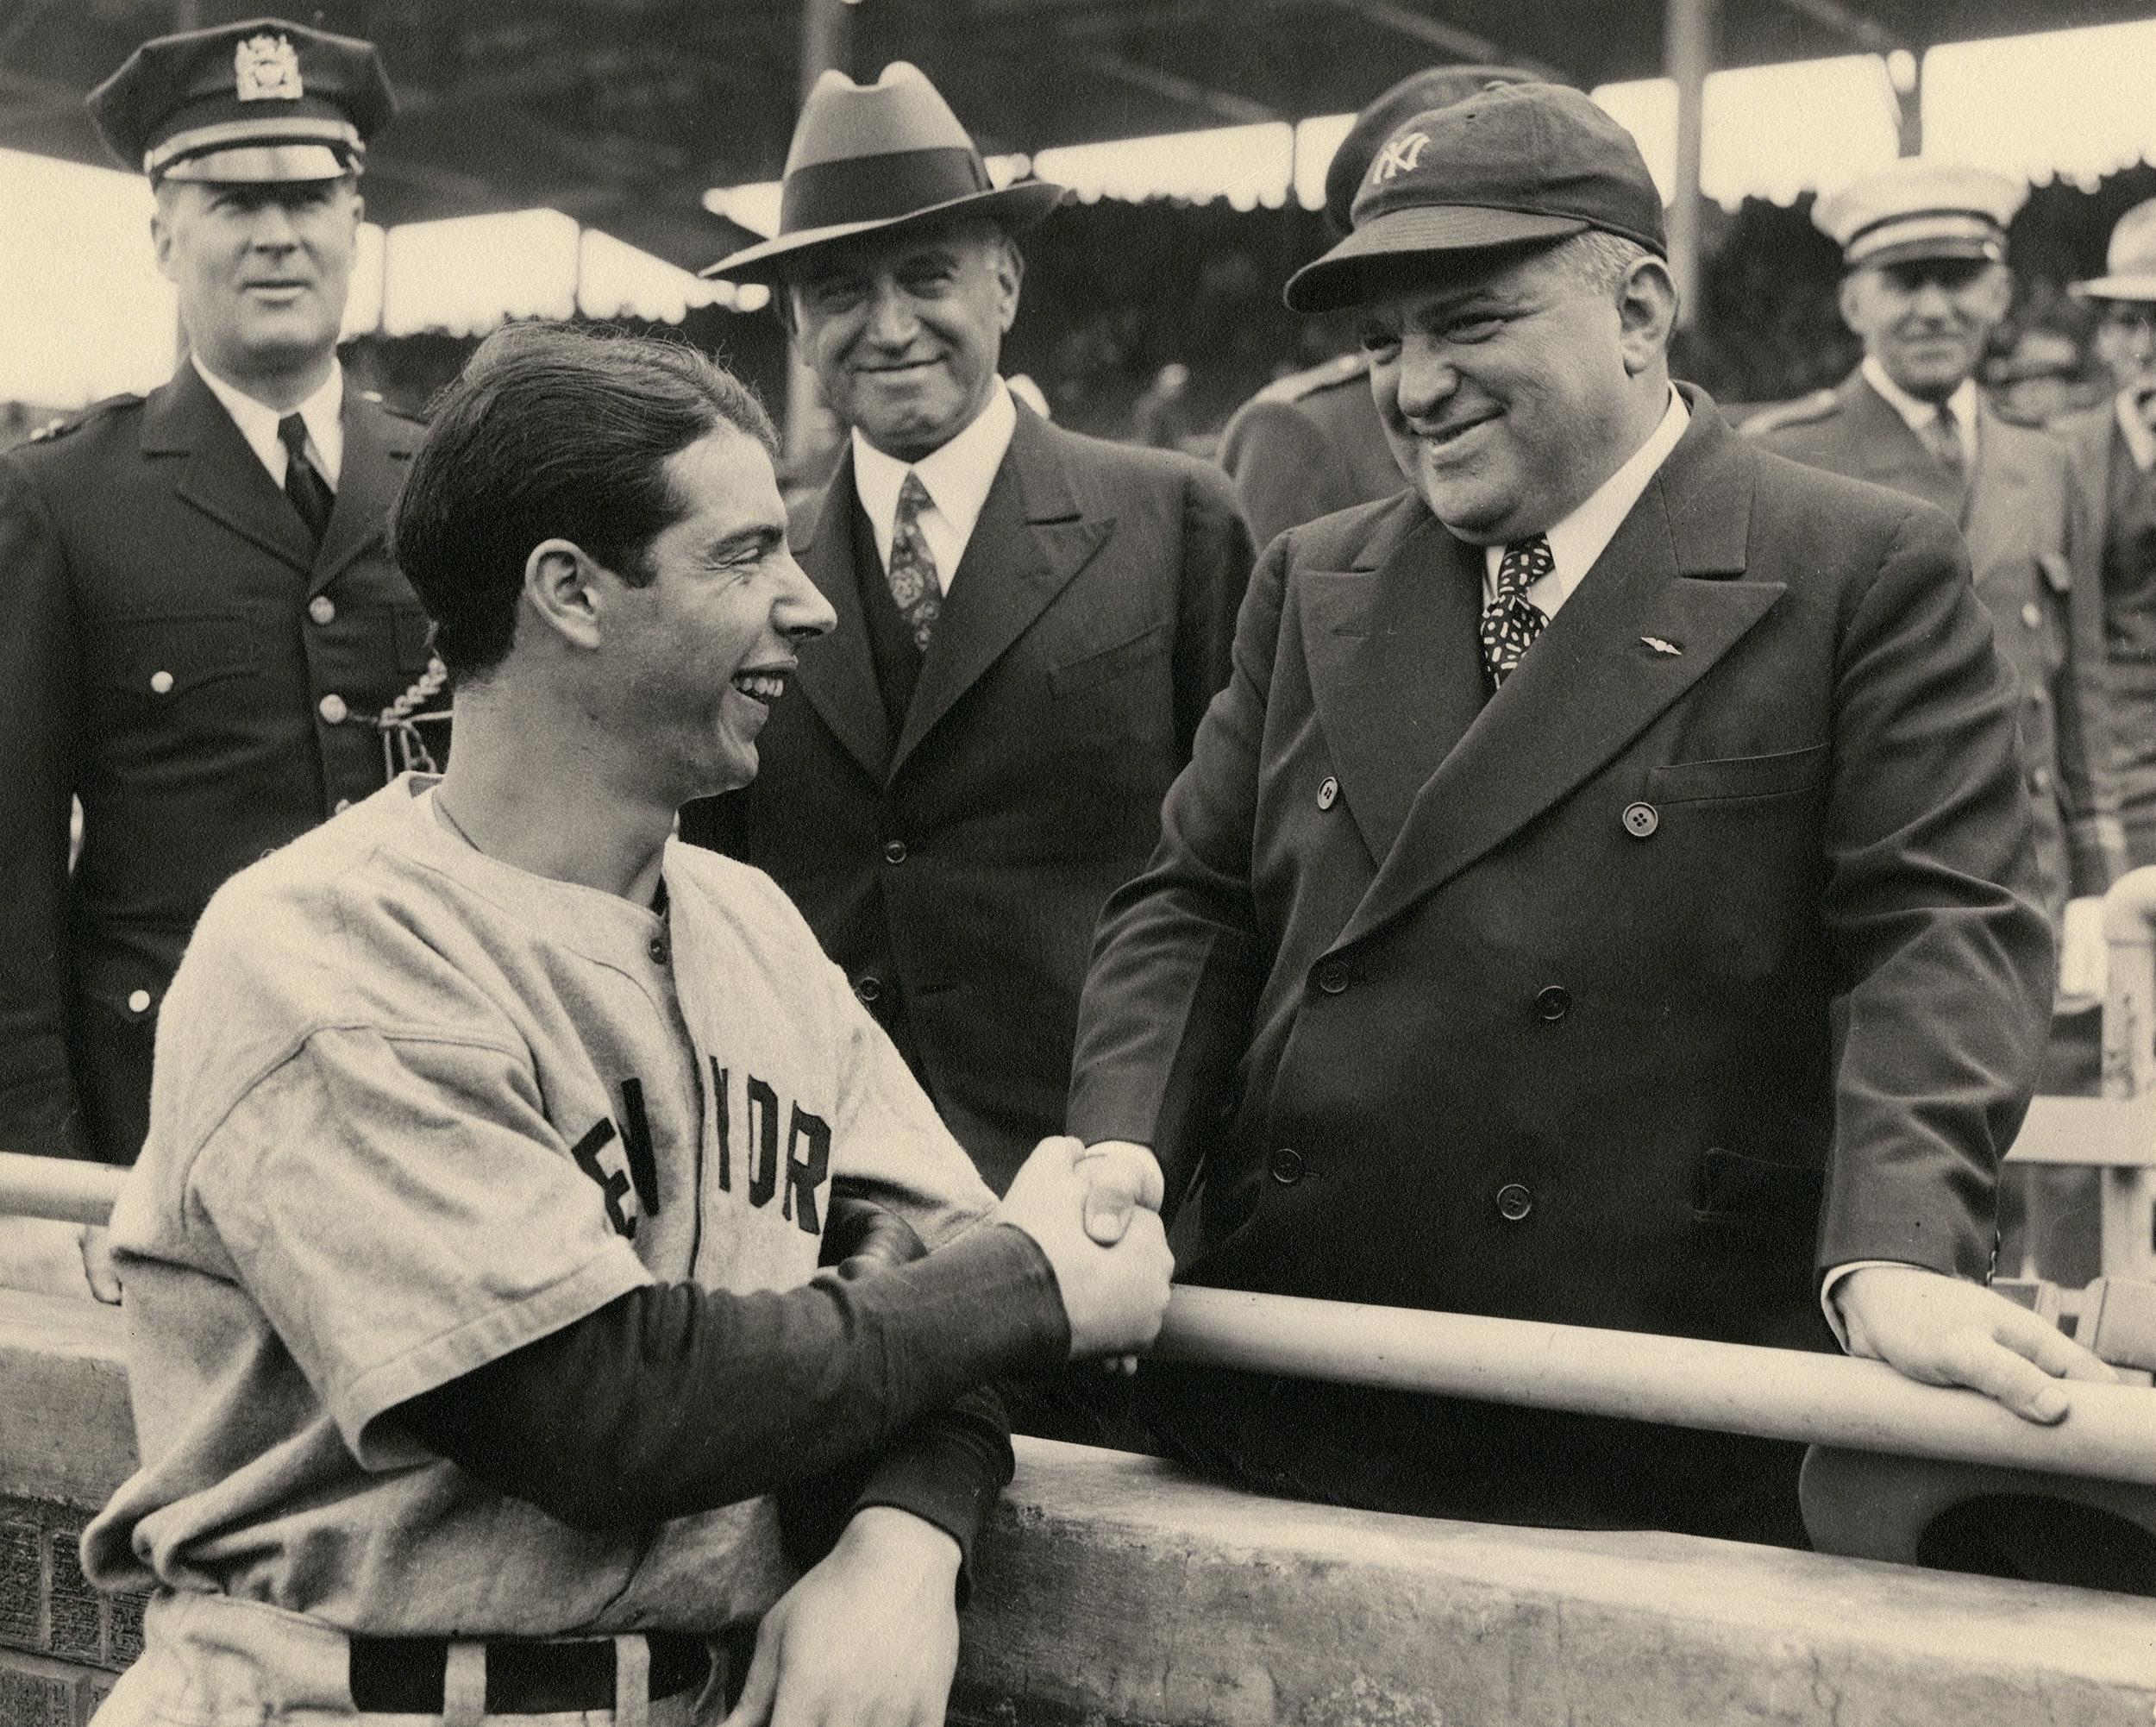 Joe DiMaggio shakes hands with Mayor Fiorello H. LaGuardia, before the start of the 1938 World Series at Wrigley Field.  Order Now.